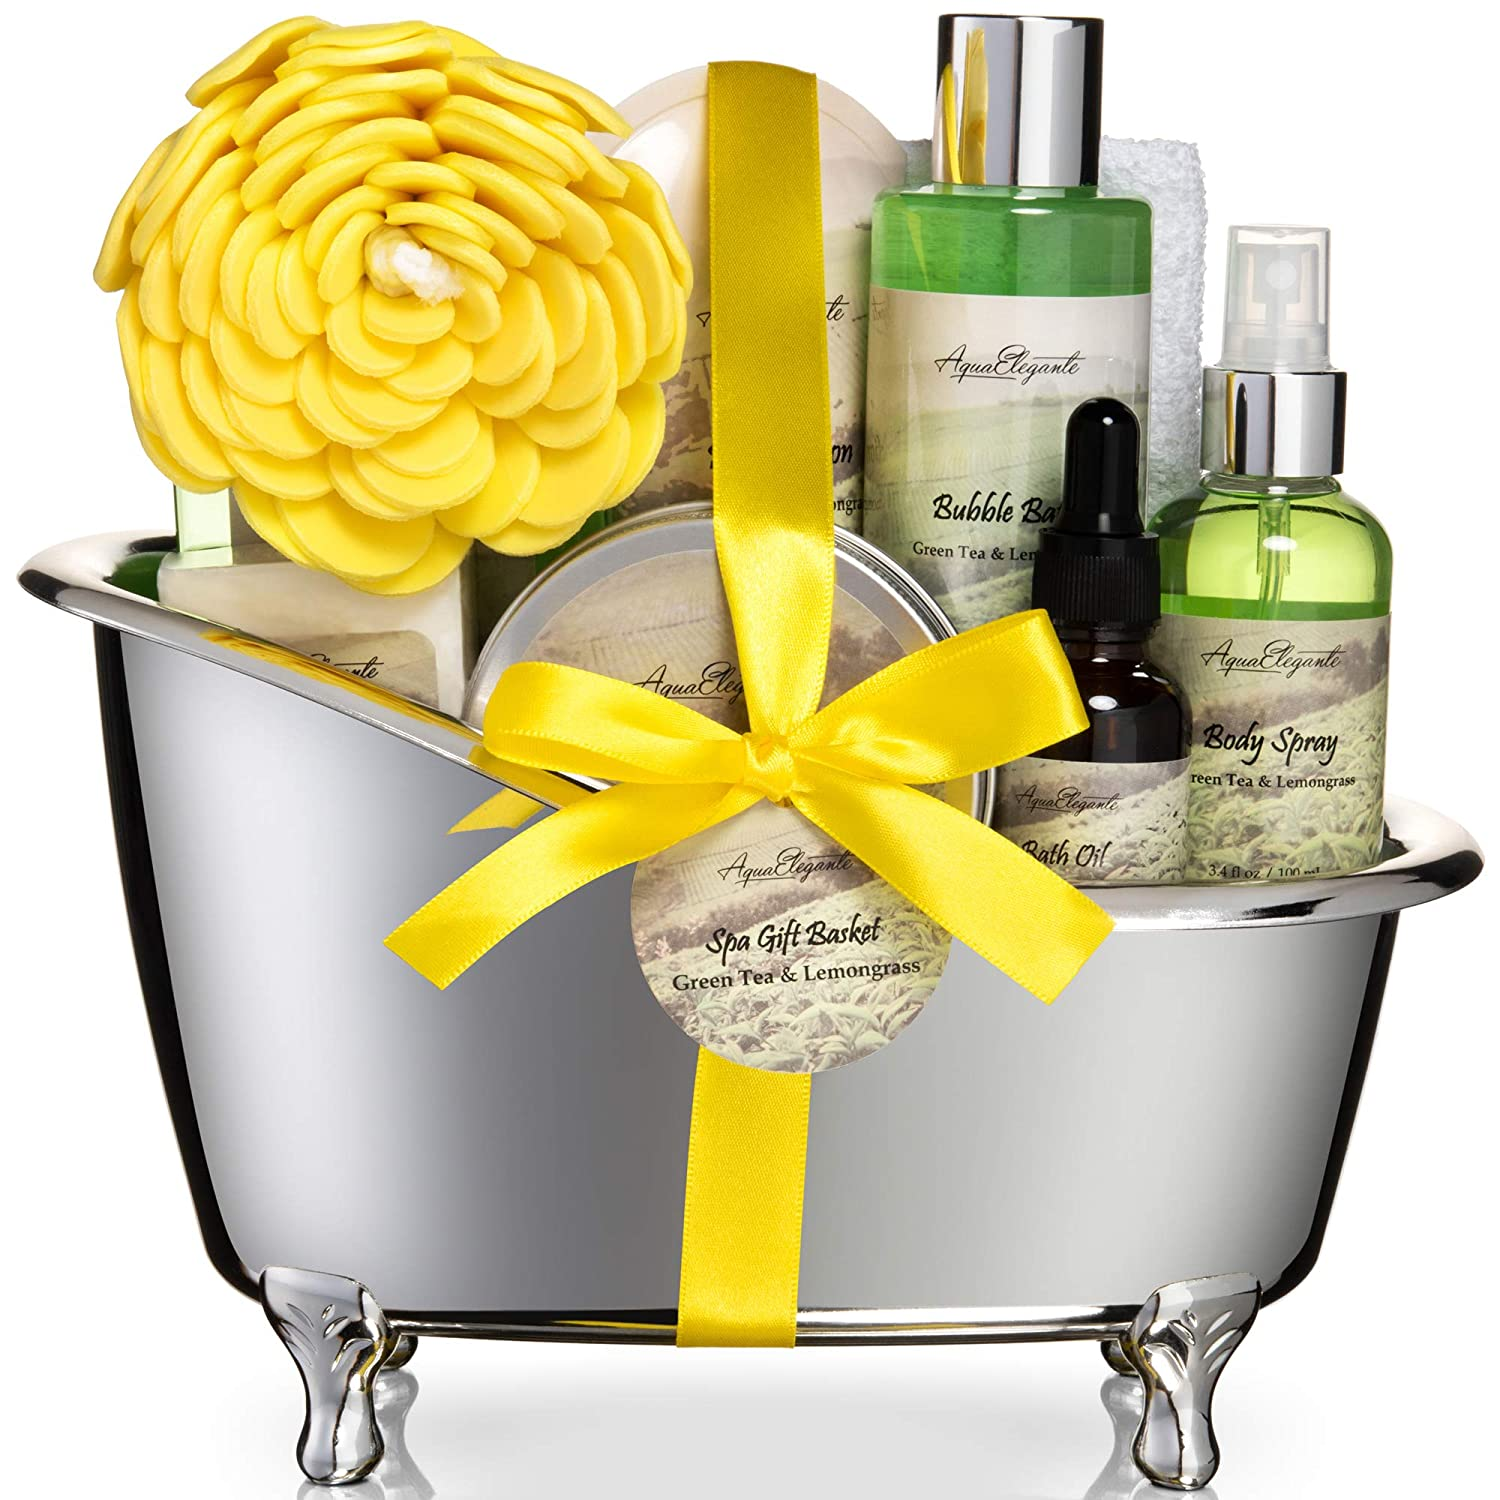 Spa Gift Baskets For Women - Luxury Bath Set With Green Tea & Lemongrass - Spa Kit Includes Body Wash, Bubble Bath, Lotion, Body Butter, Soap, Body Spray, Shower Puff, and Towel, Large